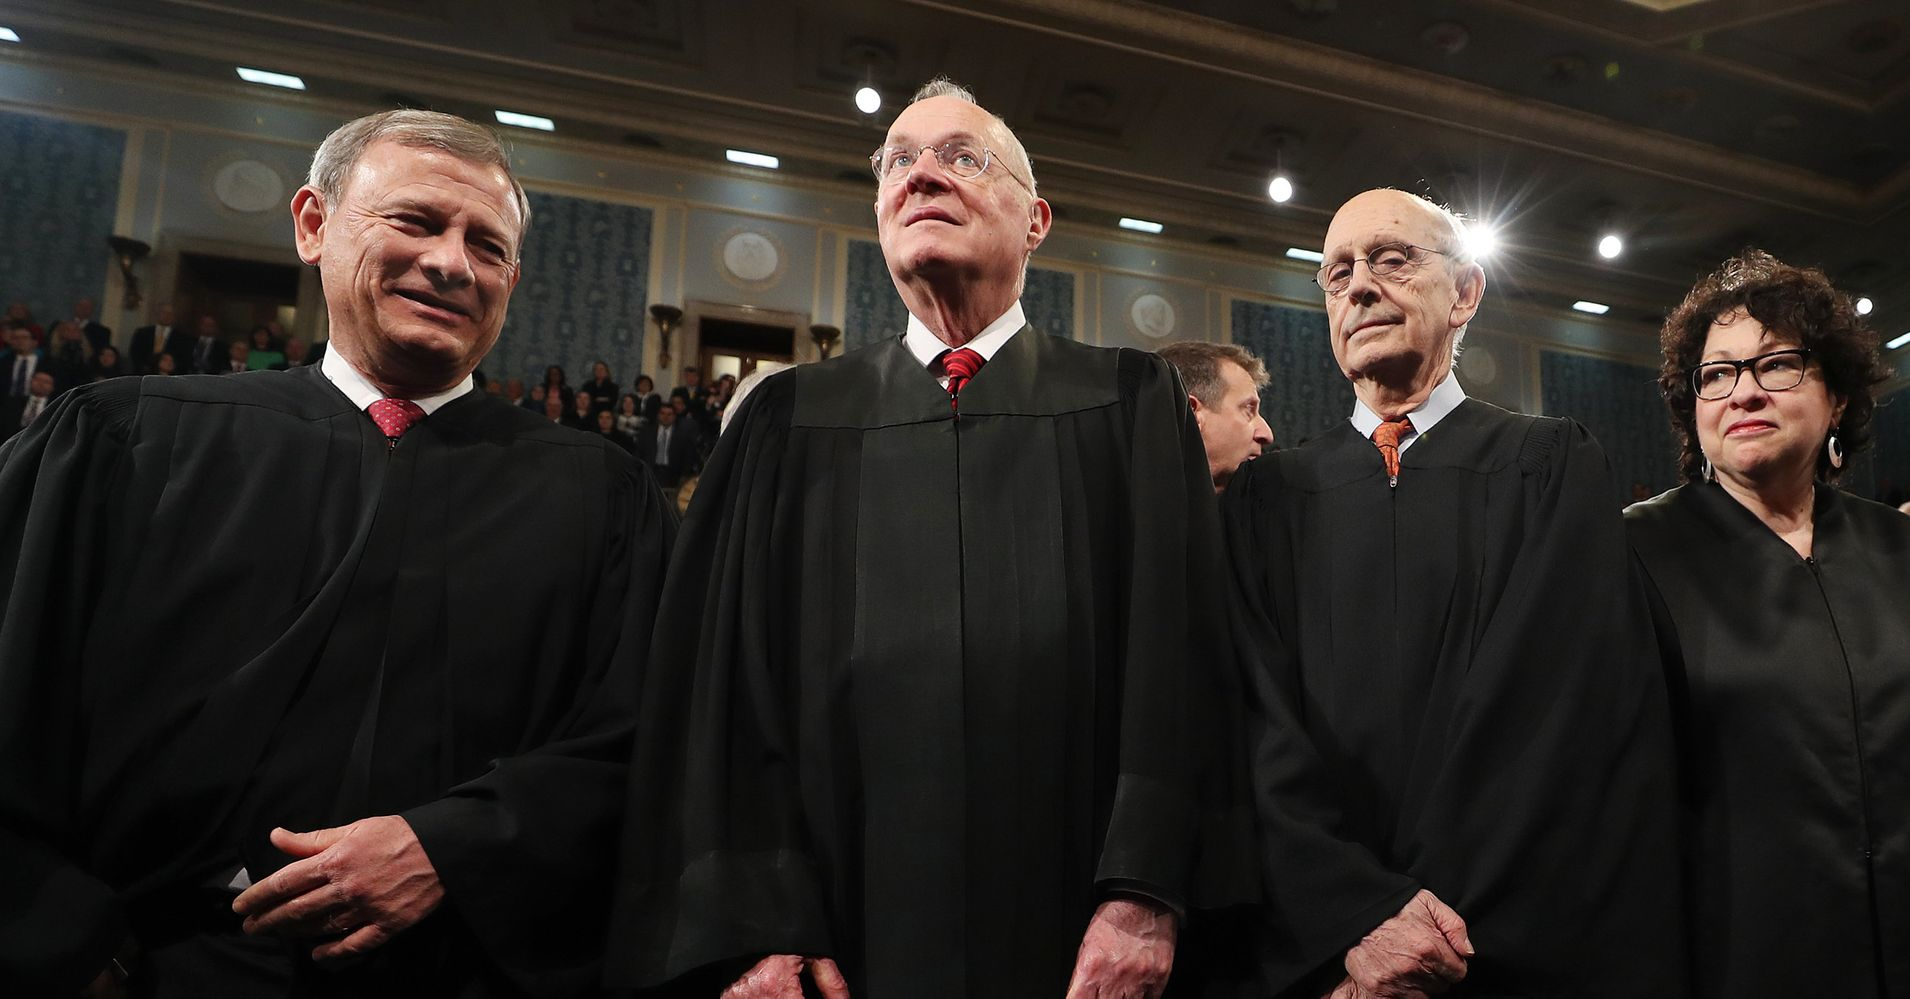 Retirement Rumors Ramp Up For Influential Supreme Court Justice